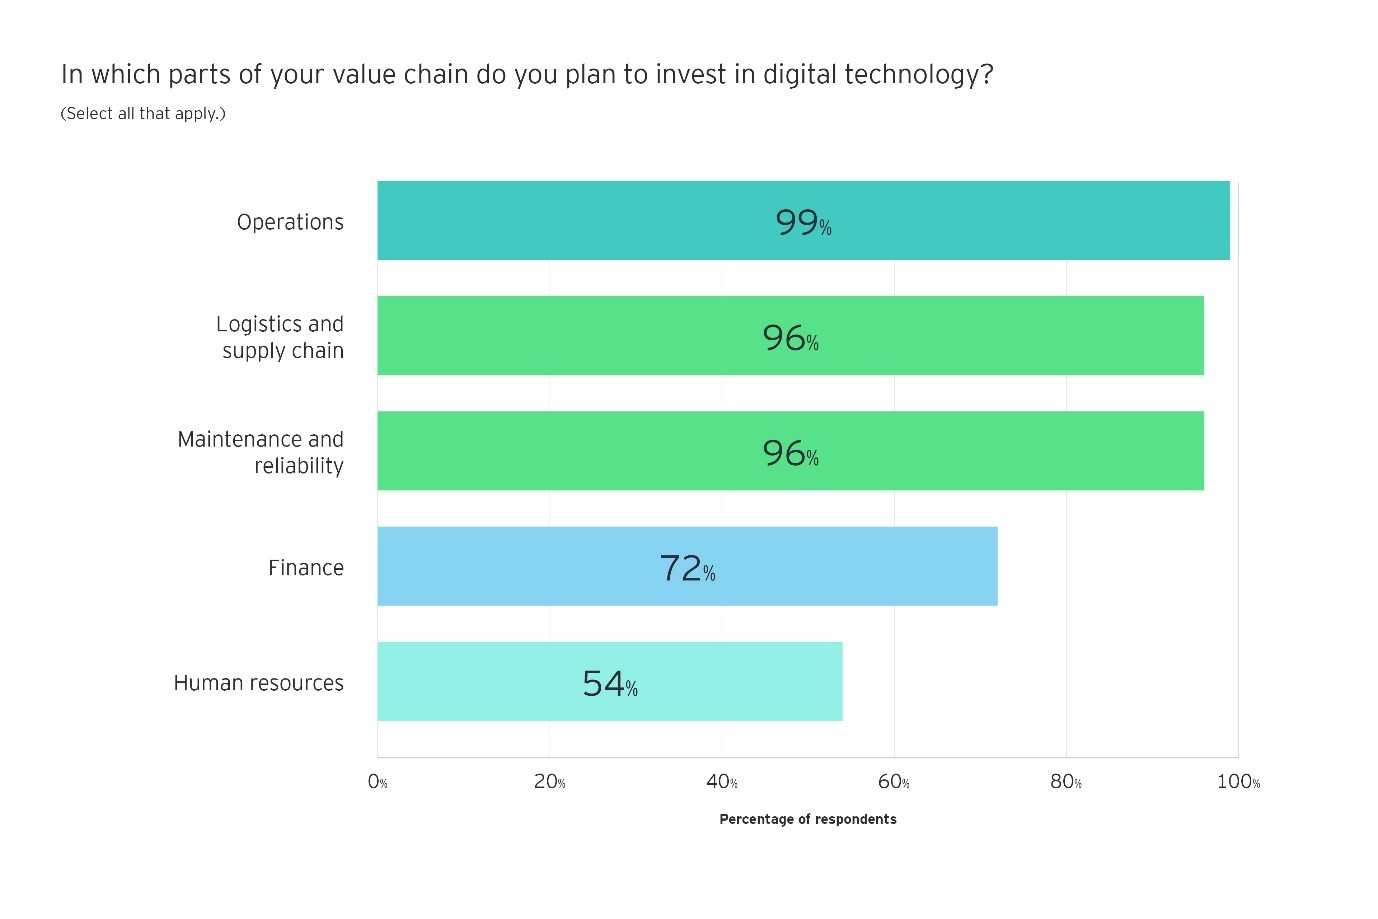 in which parts of your value chain do you plan to invest in digital technology